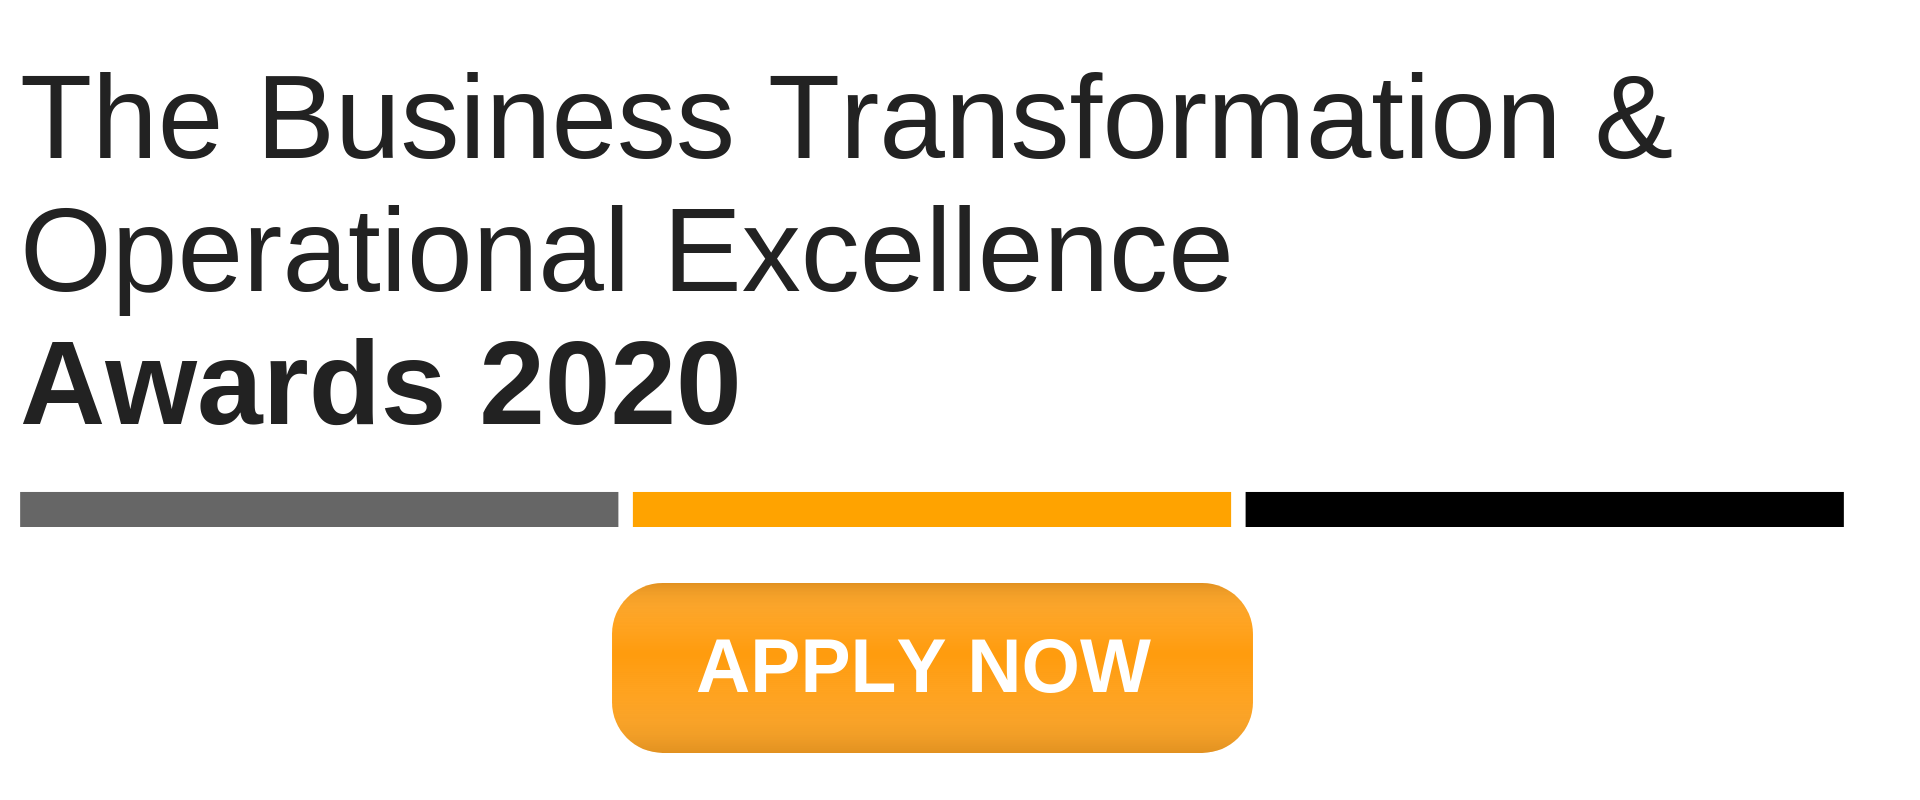 The Business Transformation & Operational Excellence Industry Awards